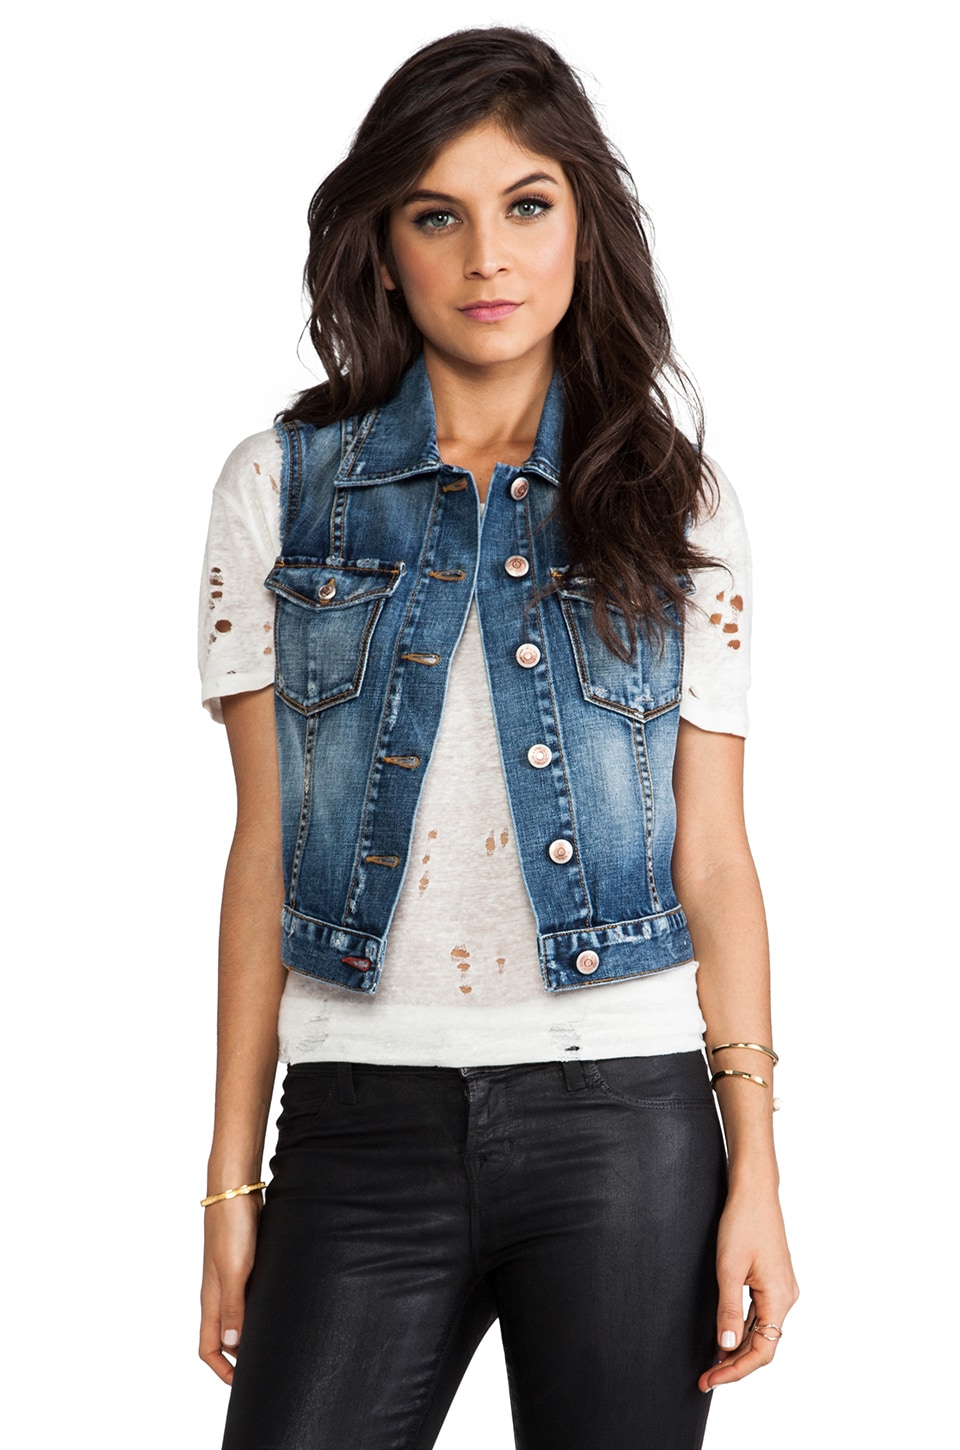 Level 99 Denim Vest in Stratus